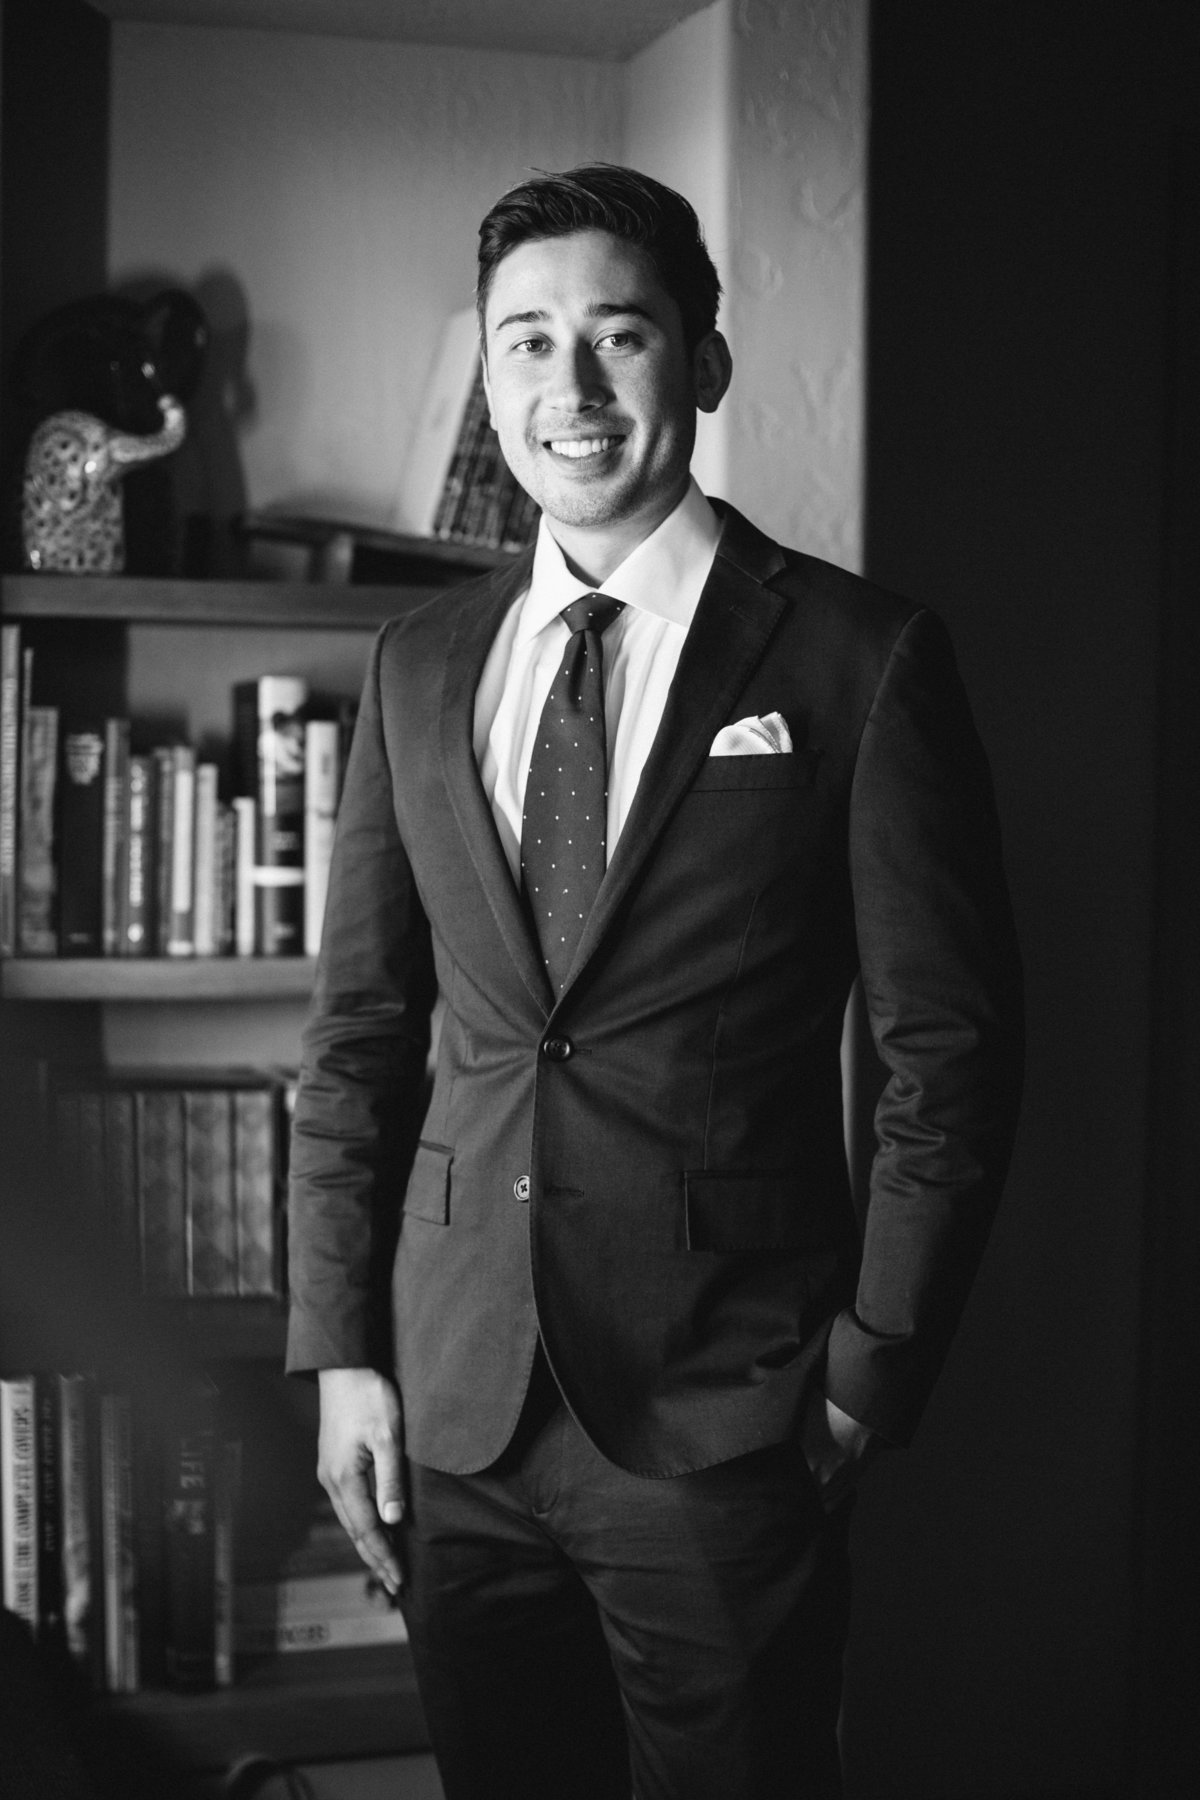 Groom photo in black and white